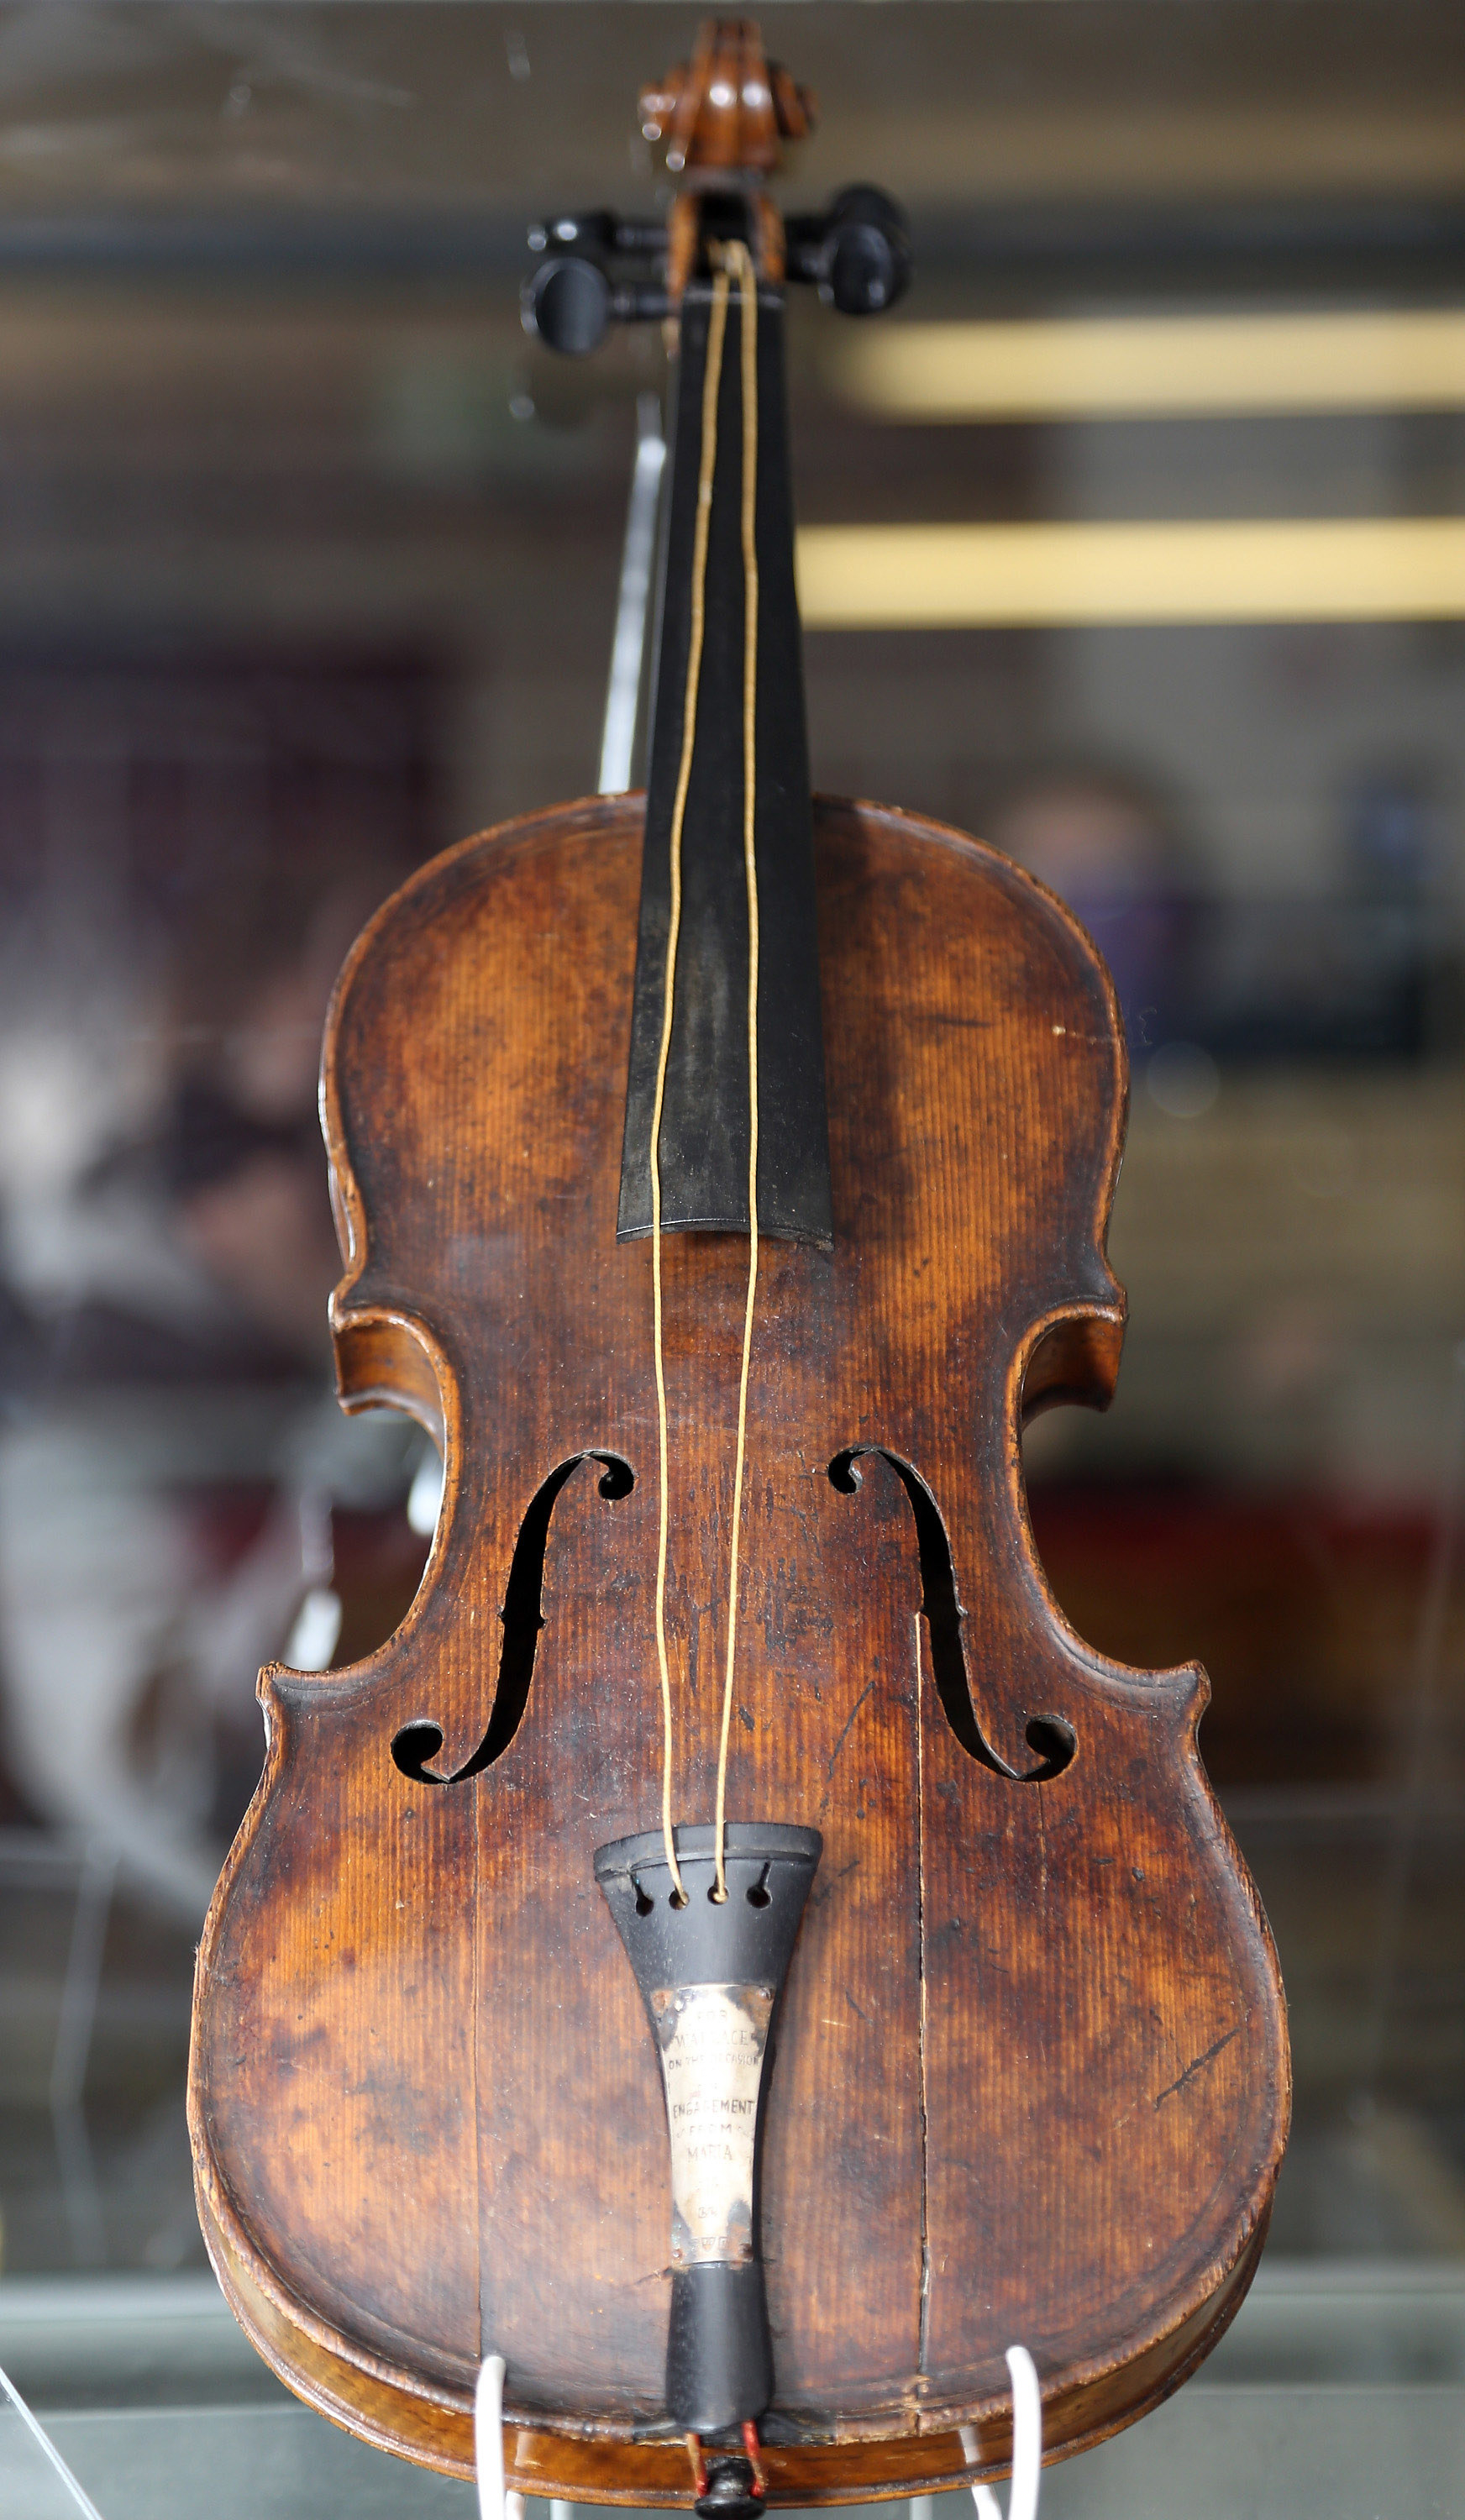 The violin in a display case